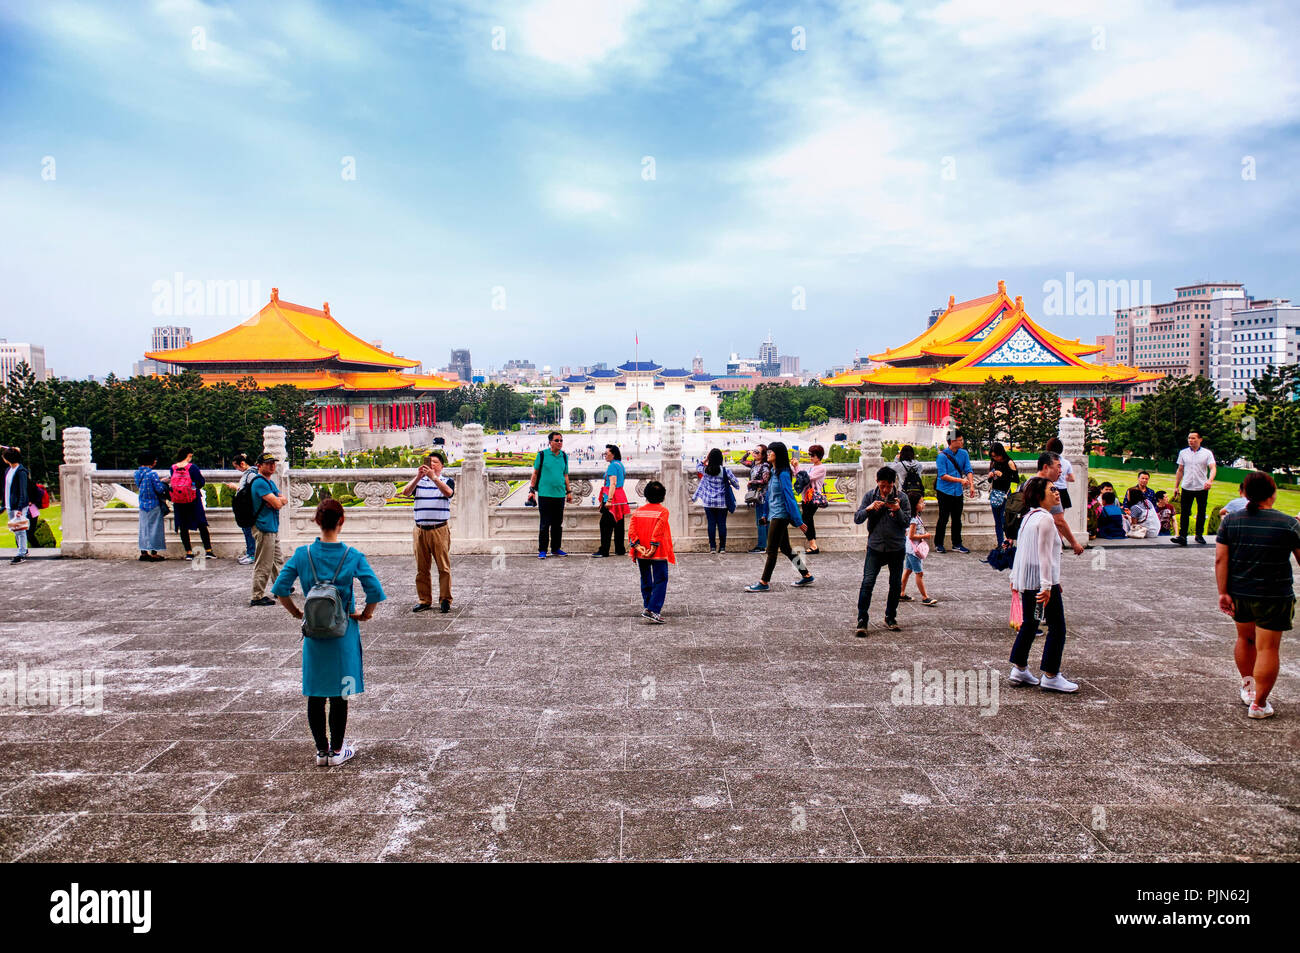 march 31, 2018.  Taipei, Taiwan. Tourists in front of the Chiang Kai-Shek Memorial with the national concert  and theater halls in the background in t - Stock Image